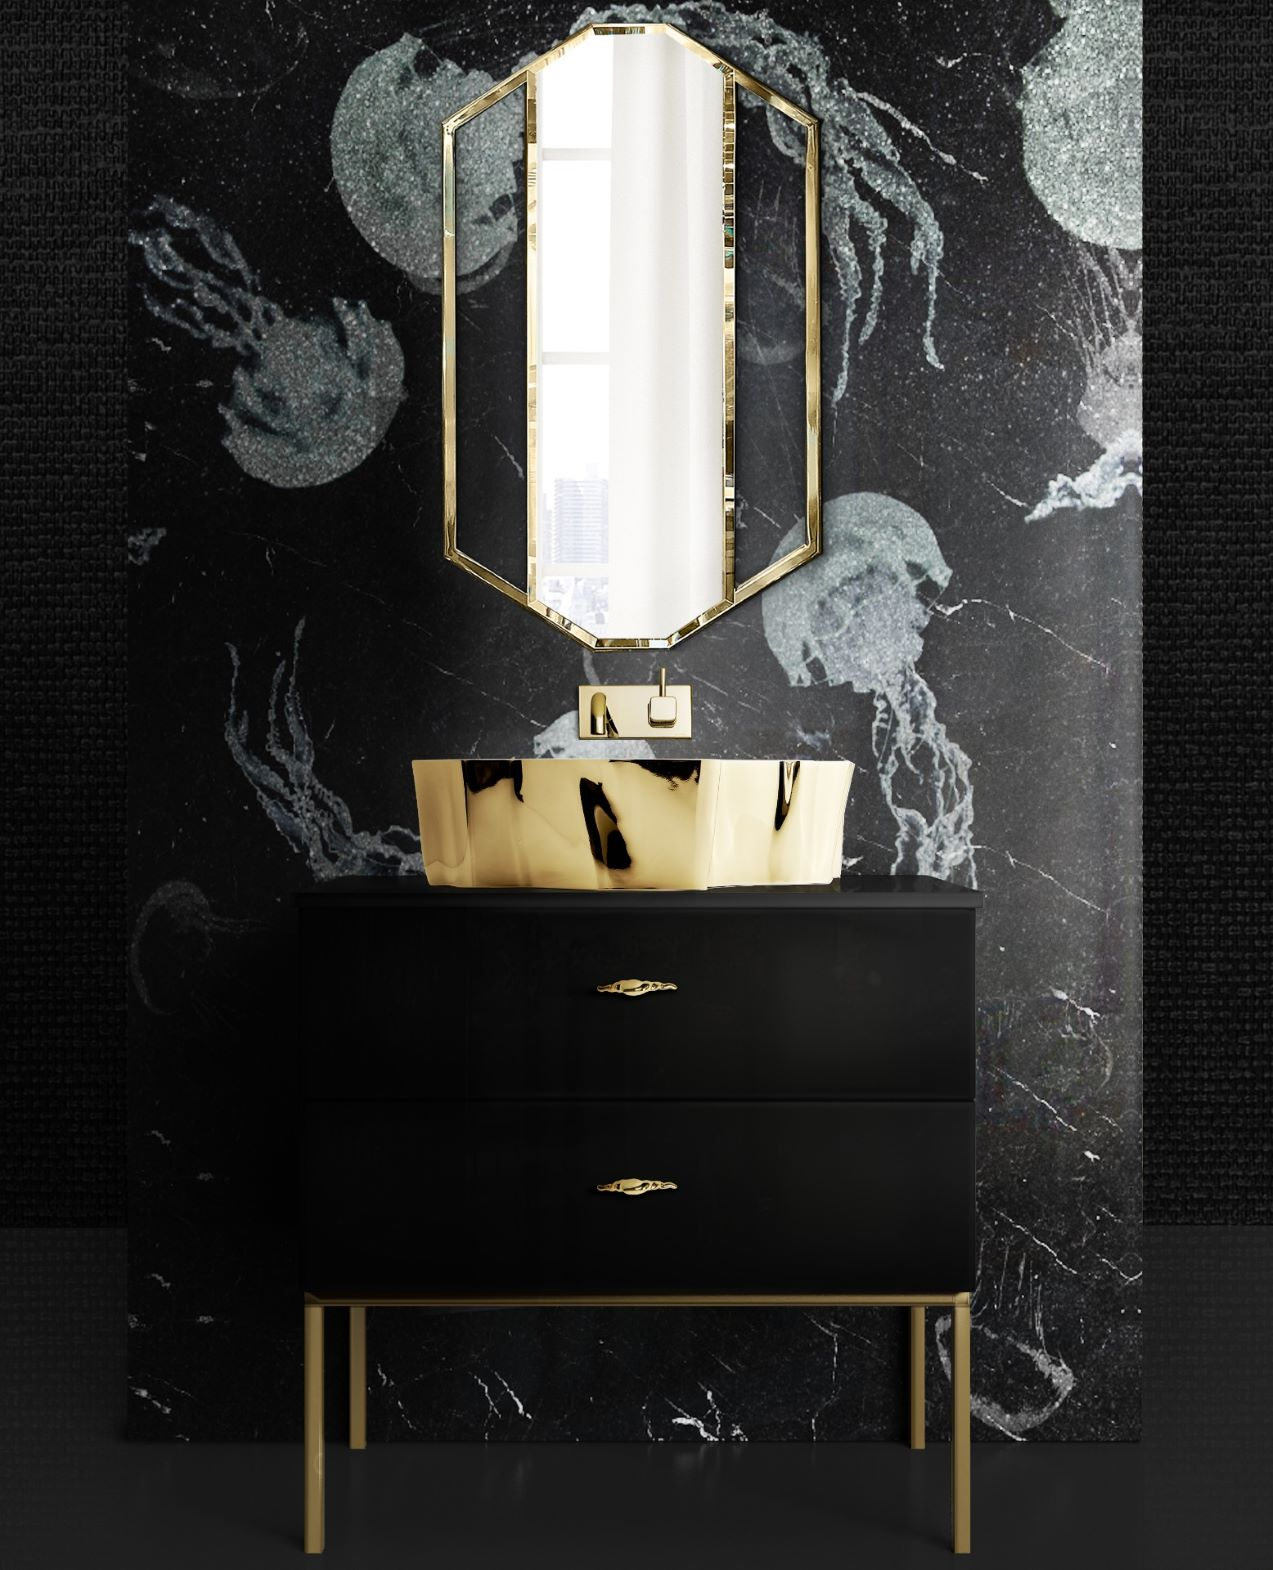 Bathroom Decor Trends 2020 To Watch Out For bathroom decor trends Bathroom Decor Trends 2020 To Watch Out For sonoran